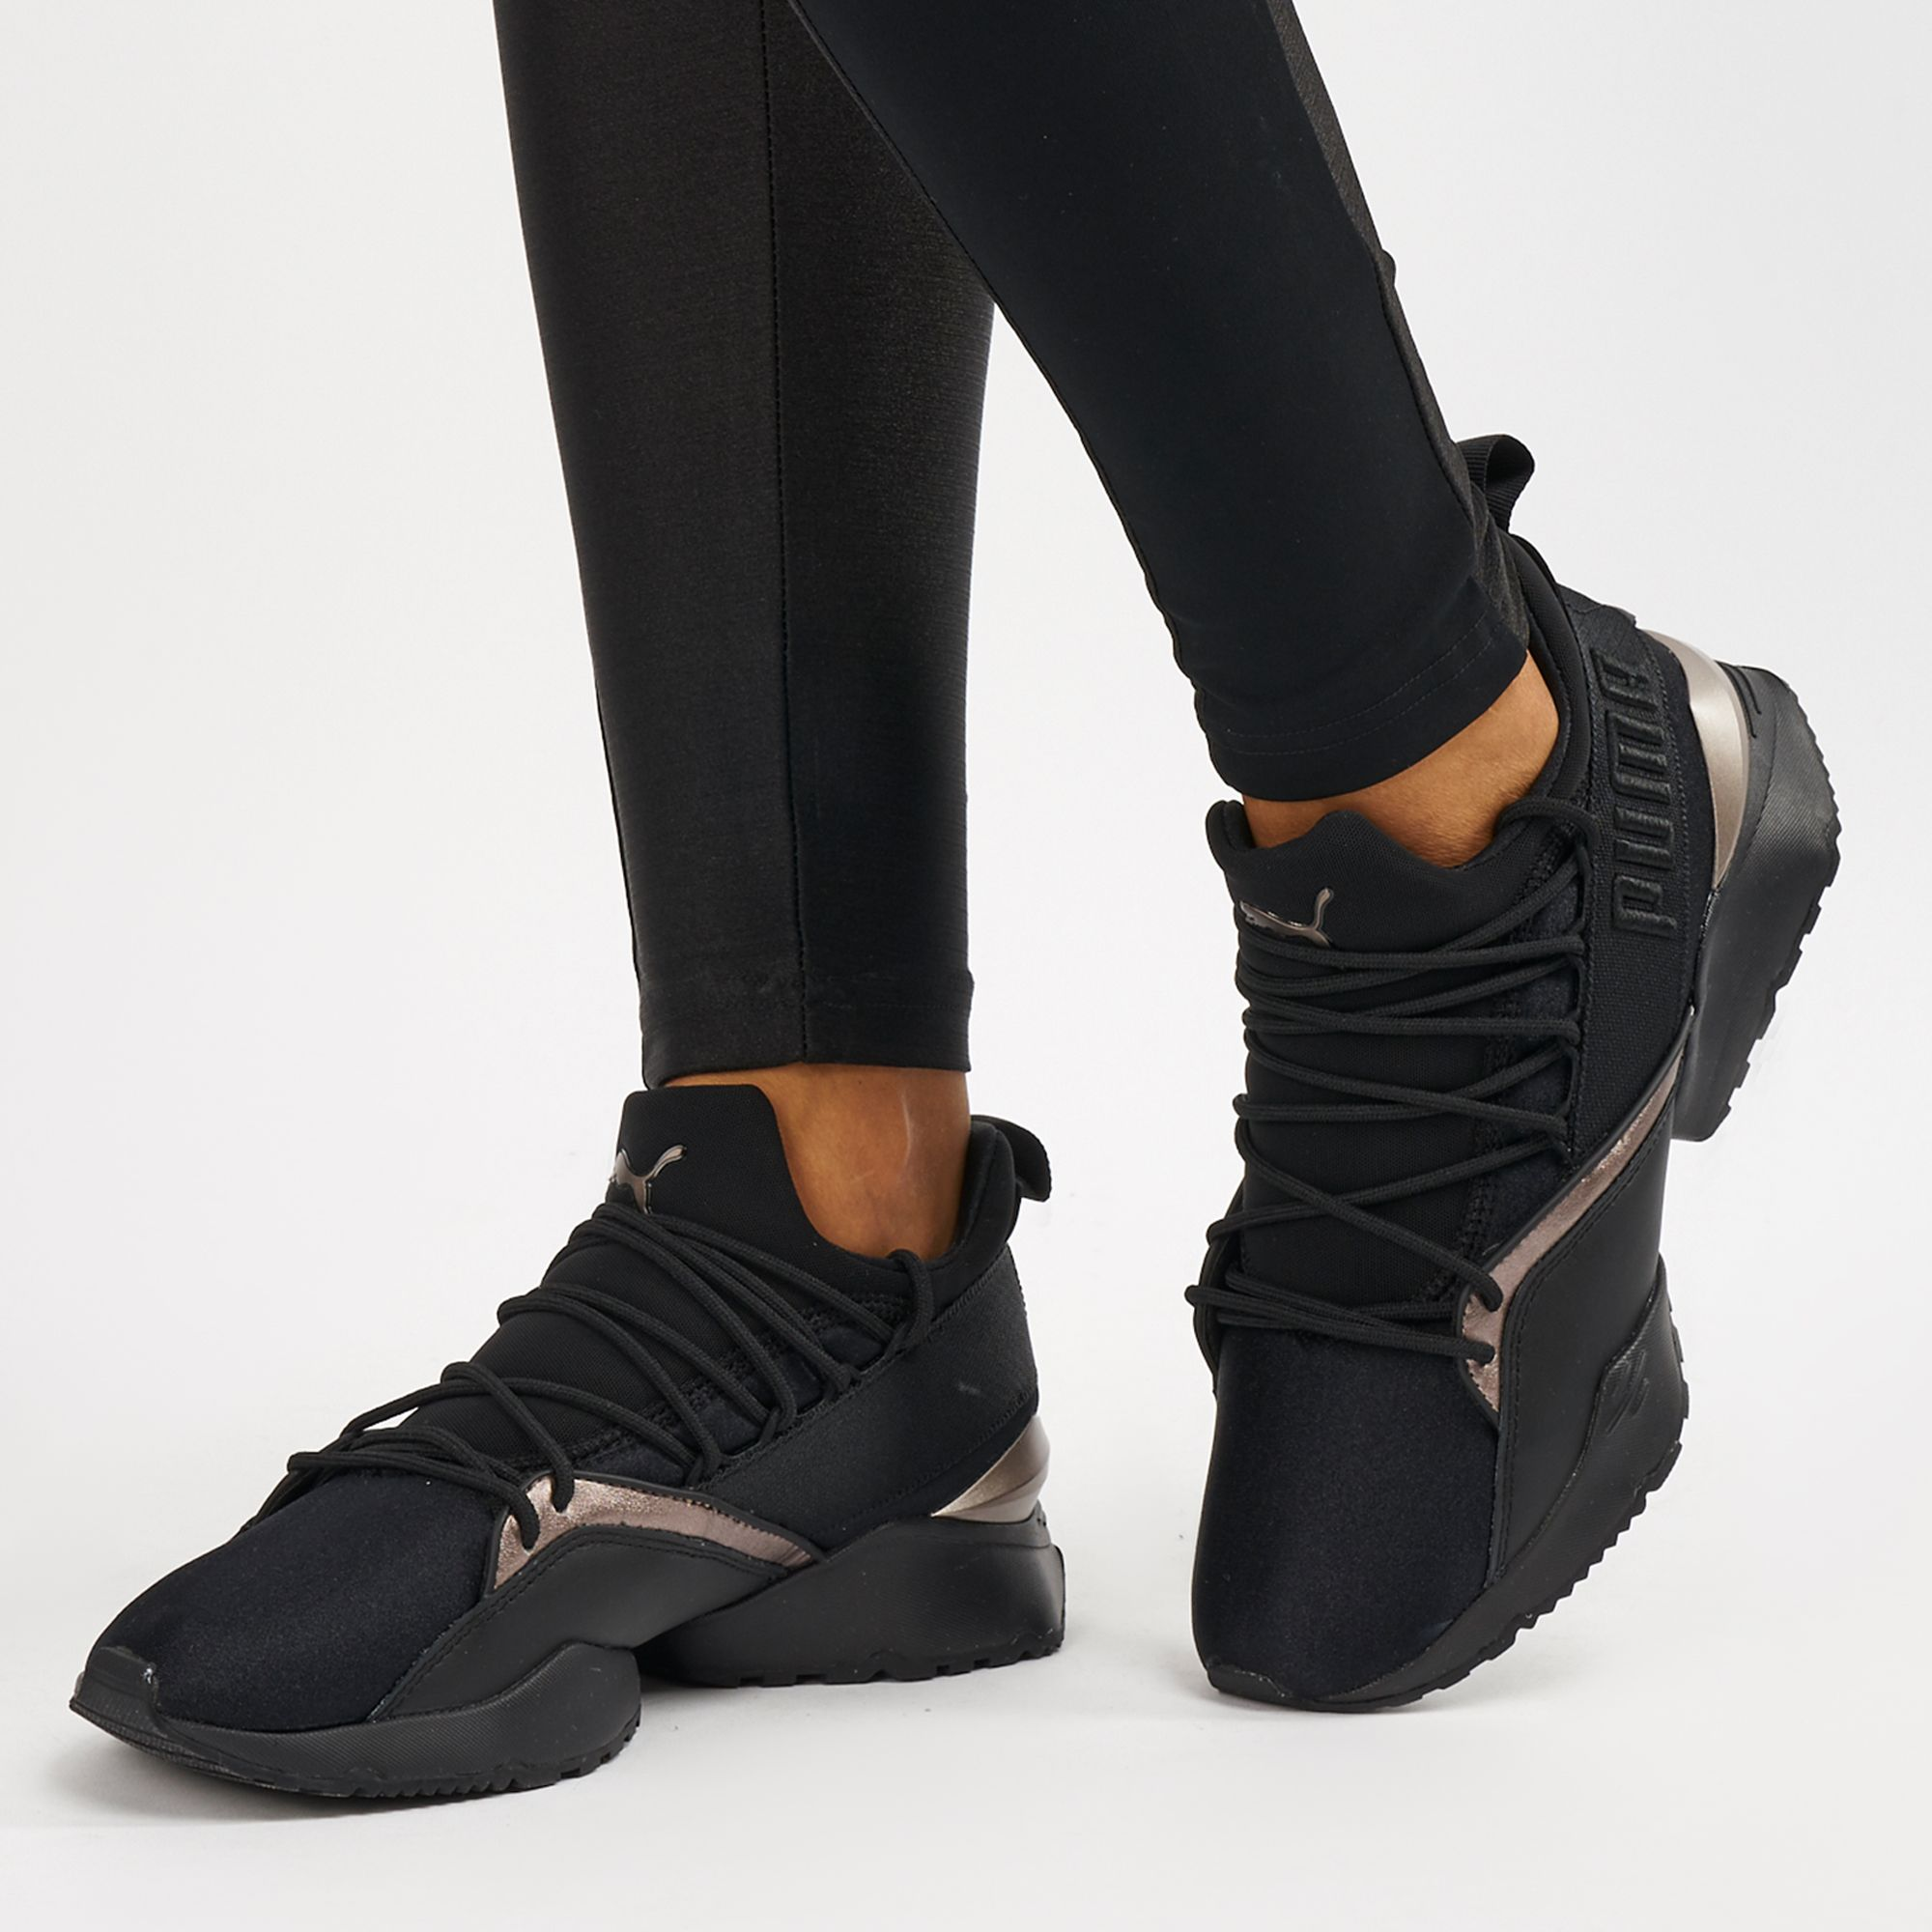 PUMA Muse Maia Luxe Shoe | Sneakers | Shoes | Women's Sale ...